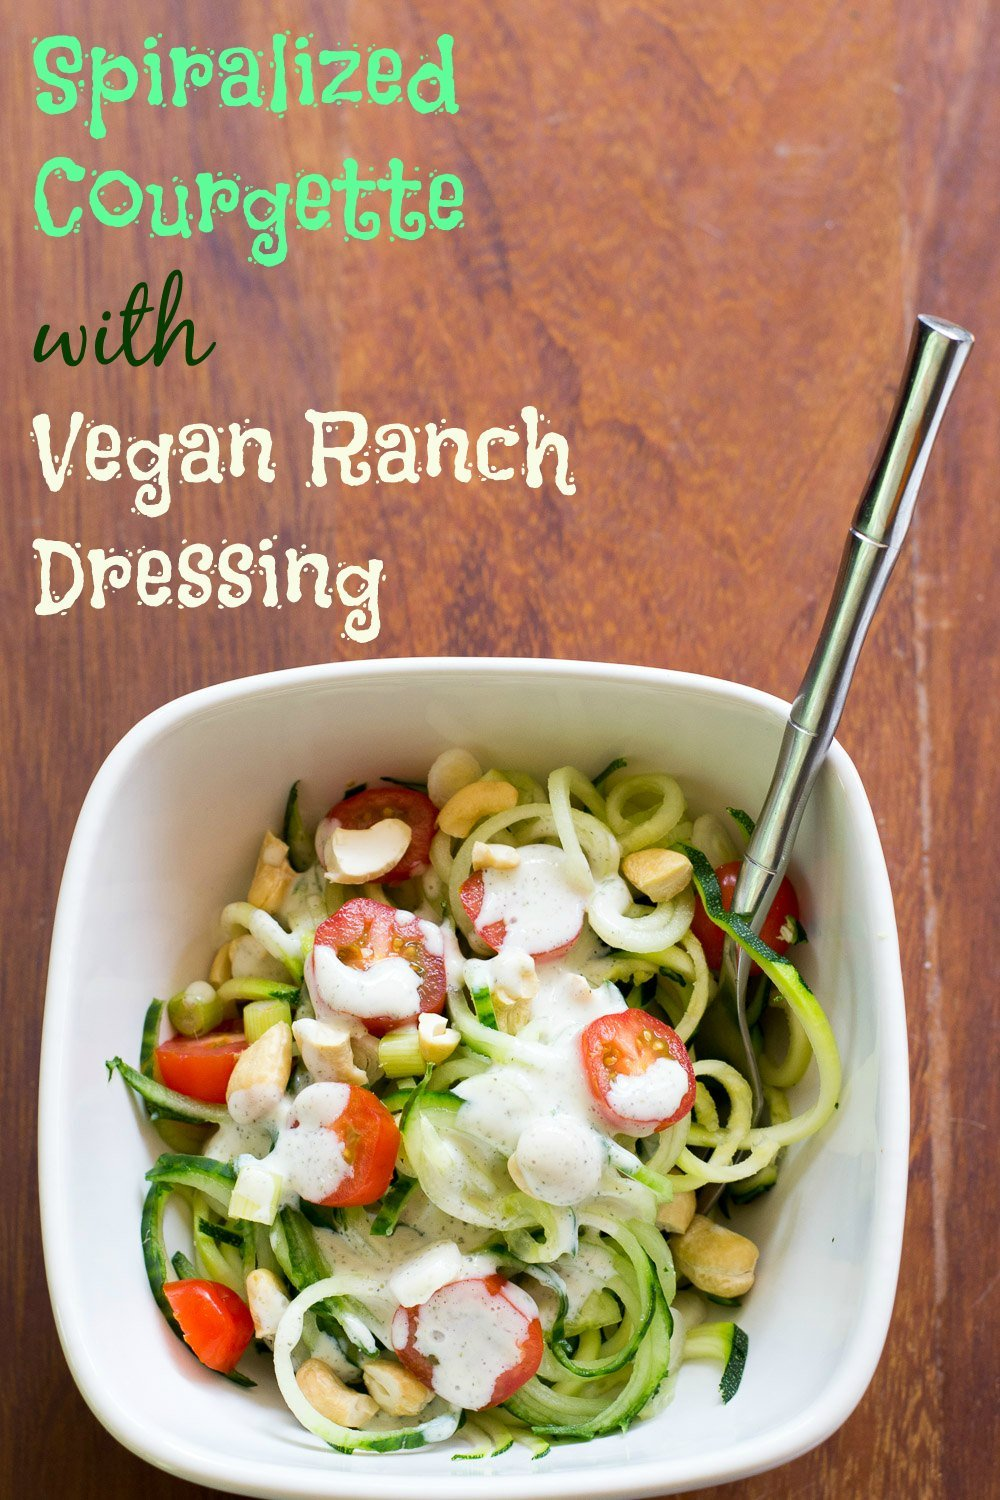 spiralized-courgette-vegan-ranch-dressing